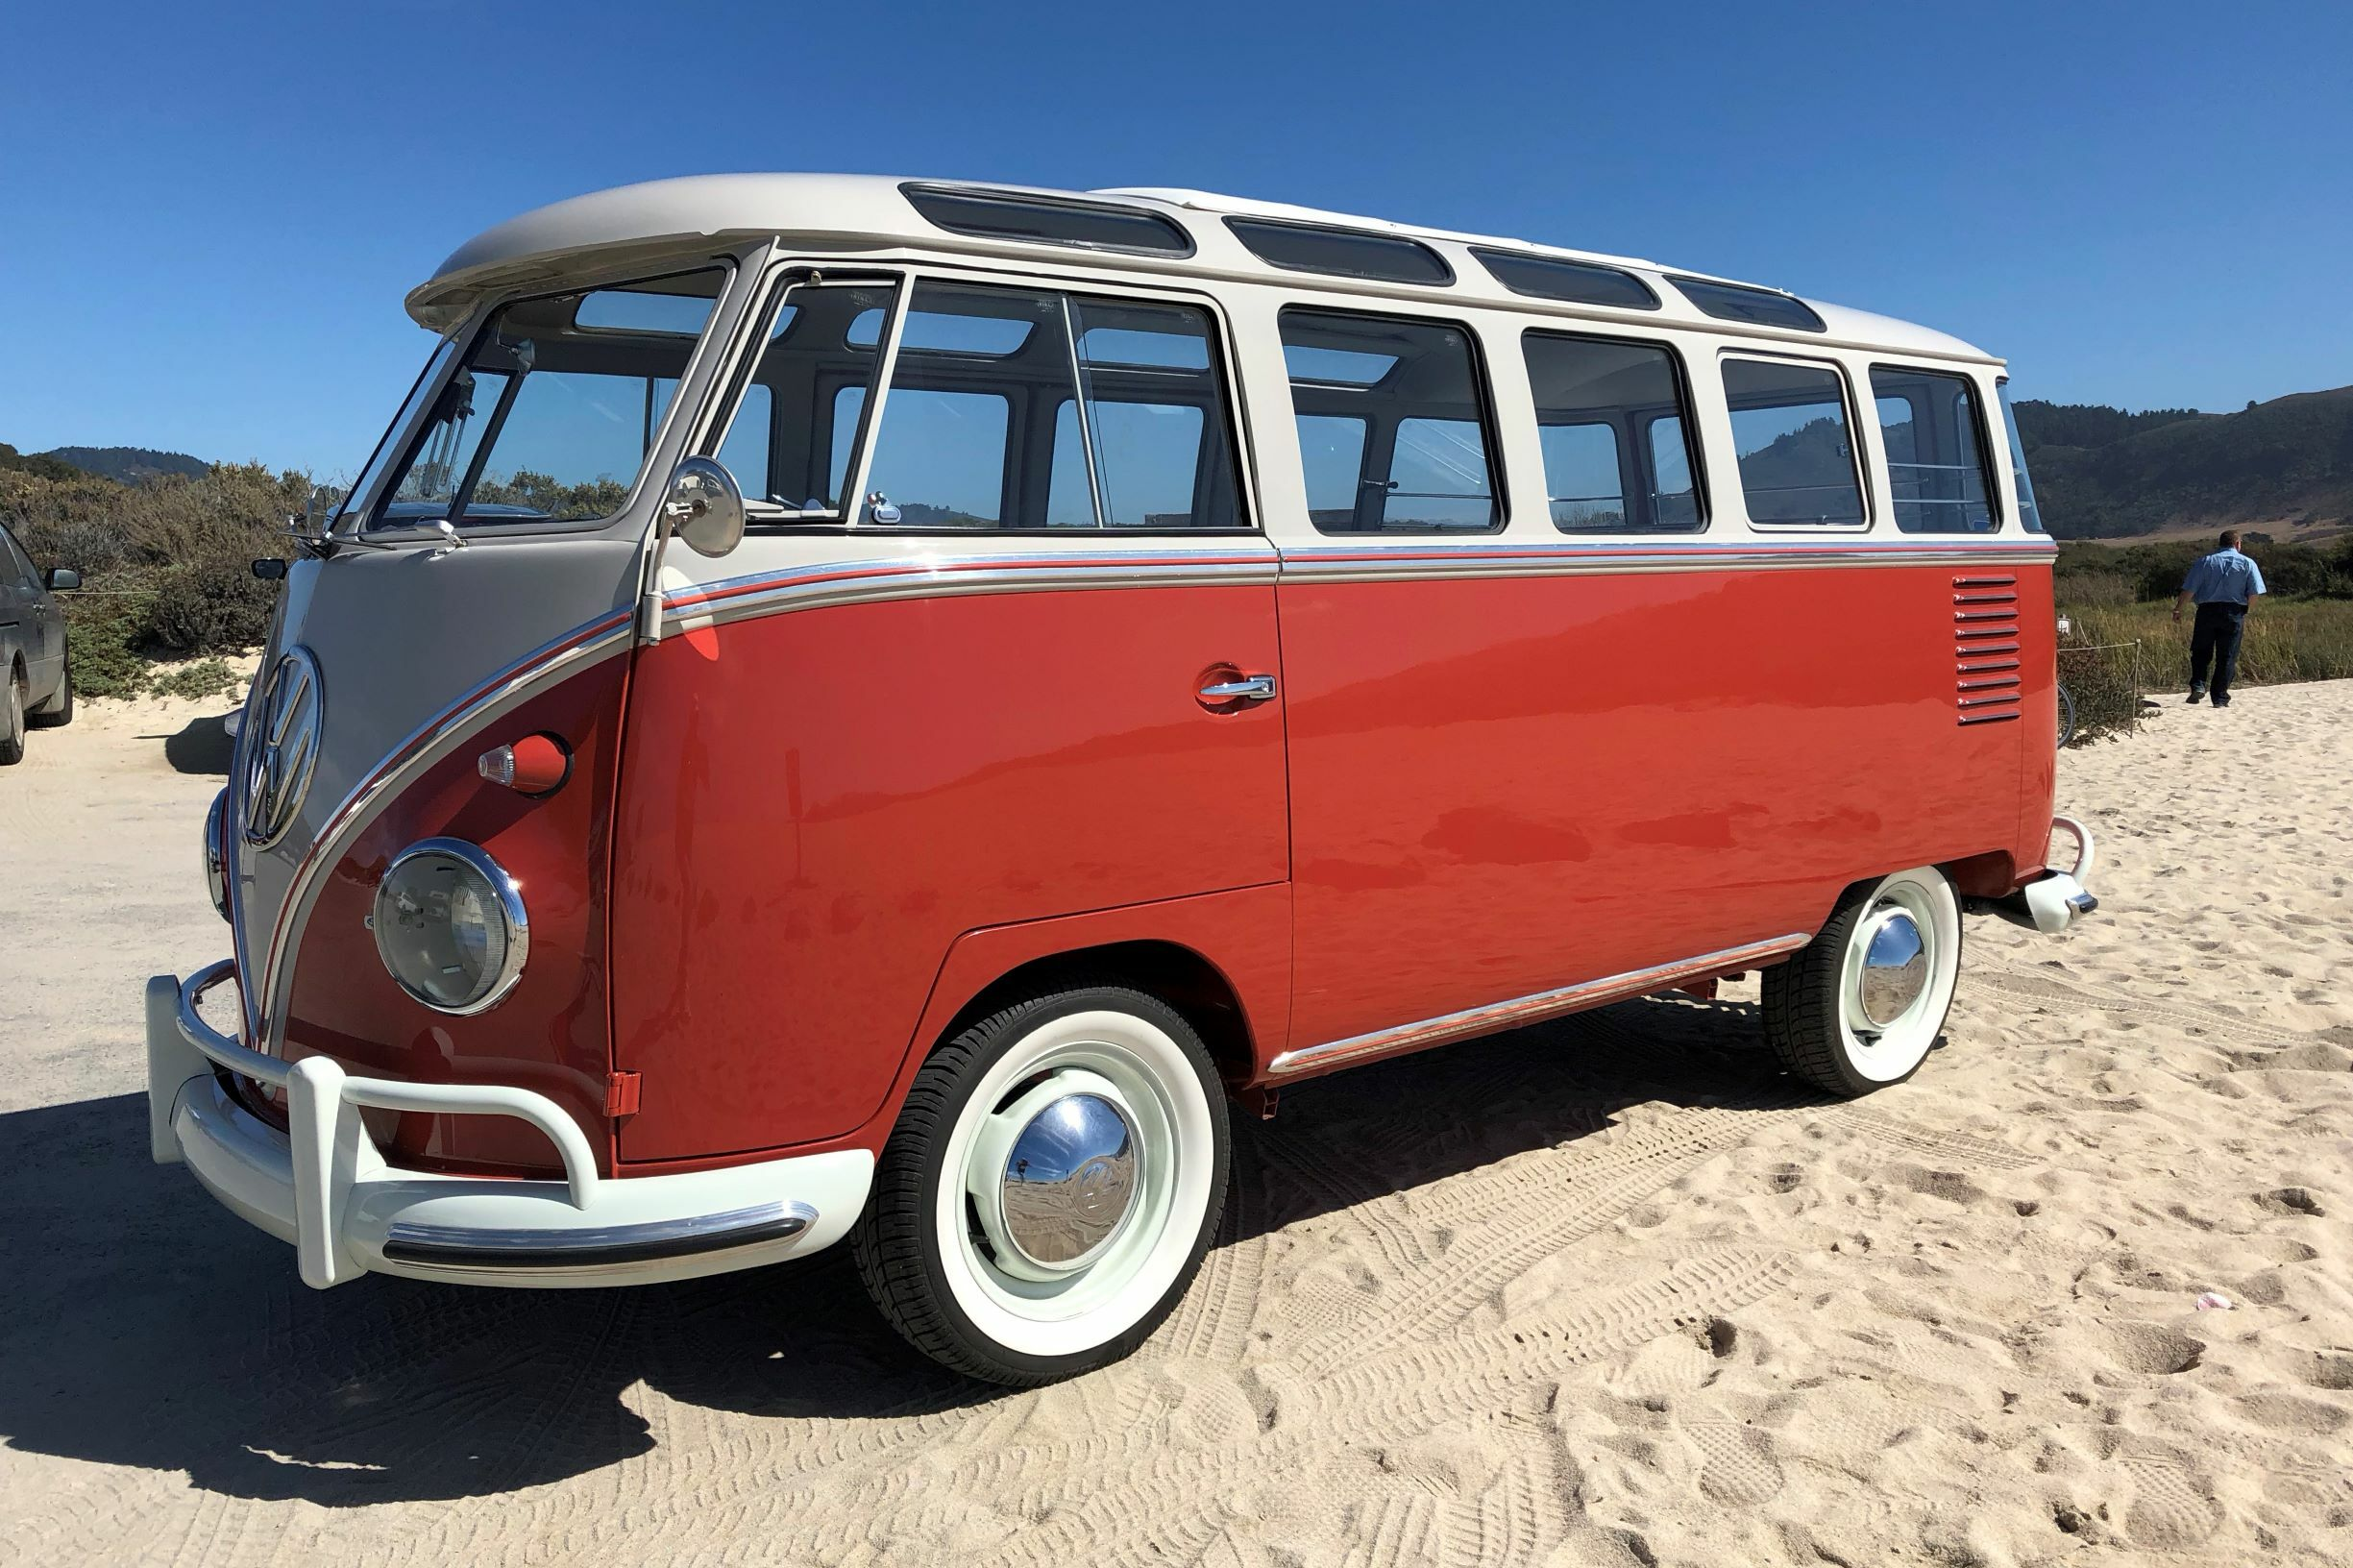 Designed by with Alpine sightseeing and mountain touring in mind, this 1959 Volkswagen 23-Window Microbus (Lot #729) has been fully restored and stands ready for that mission.